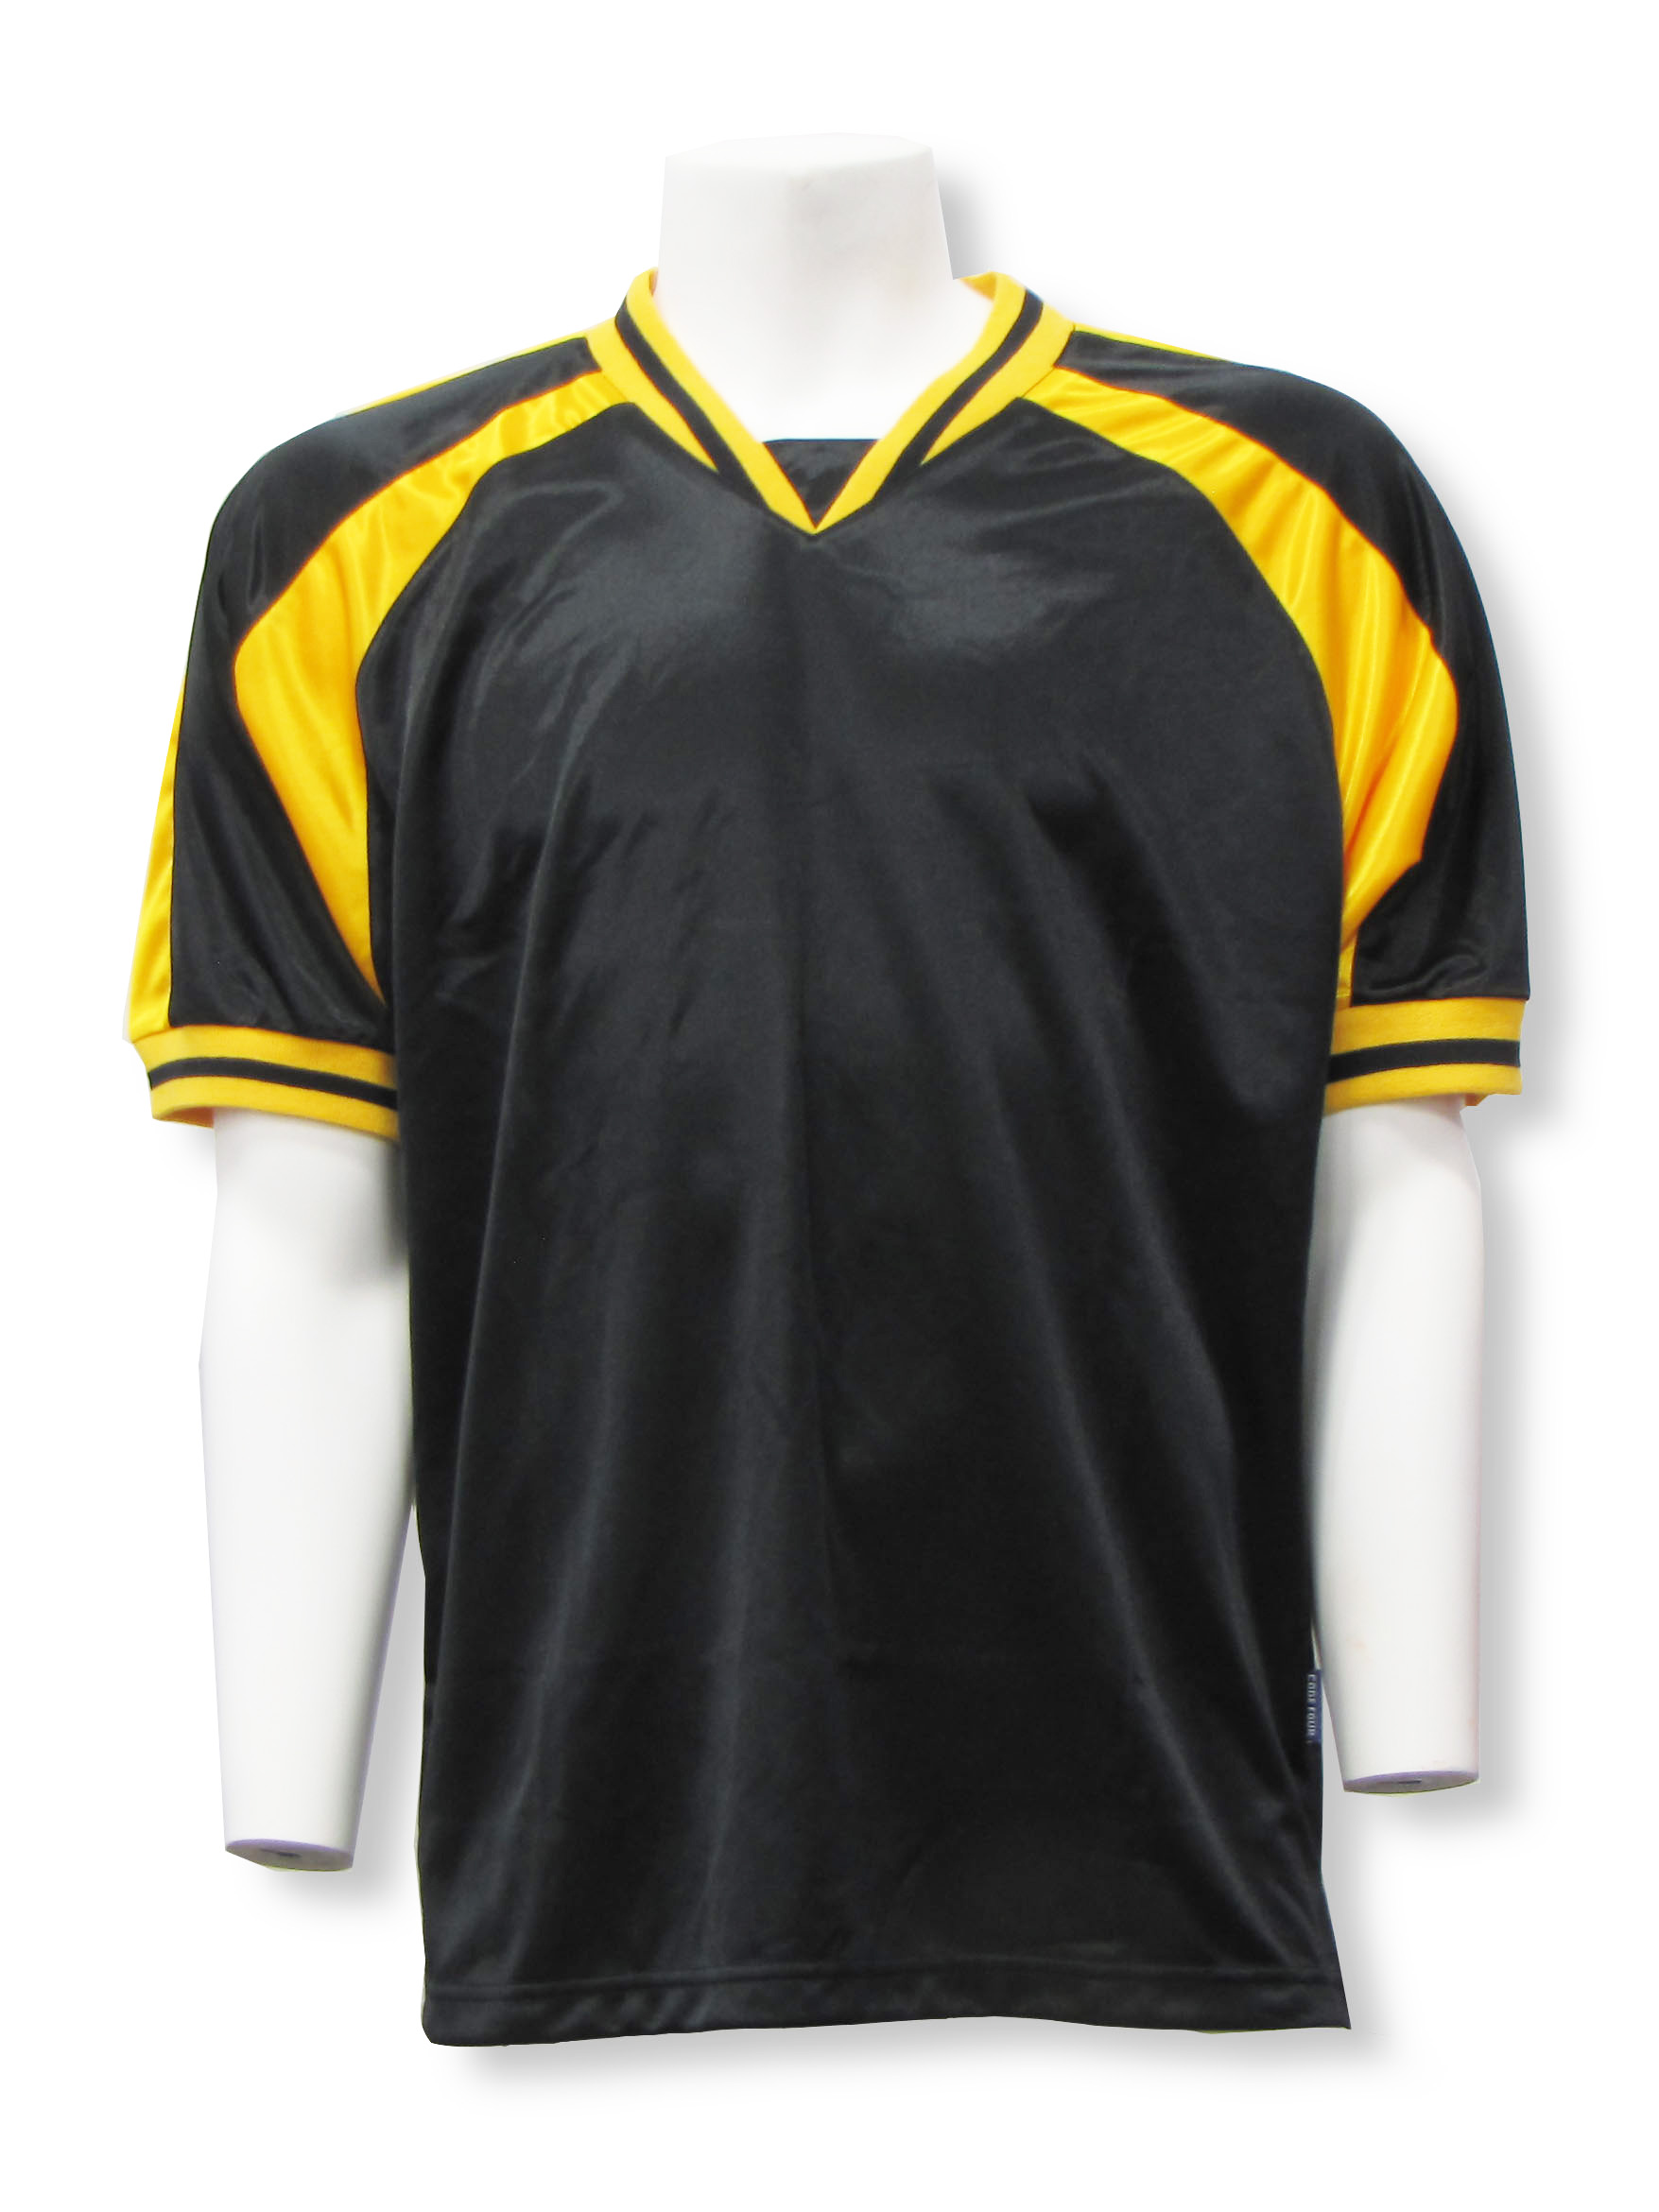 Spitfire soccer jersey in black/gold by Code Four Athletics